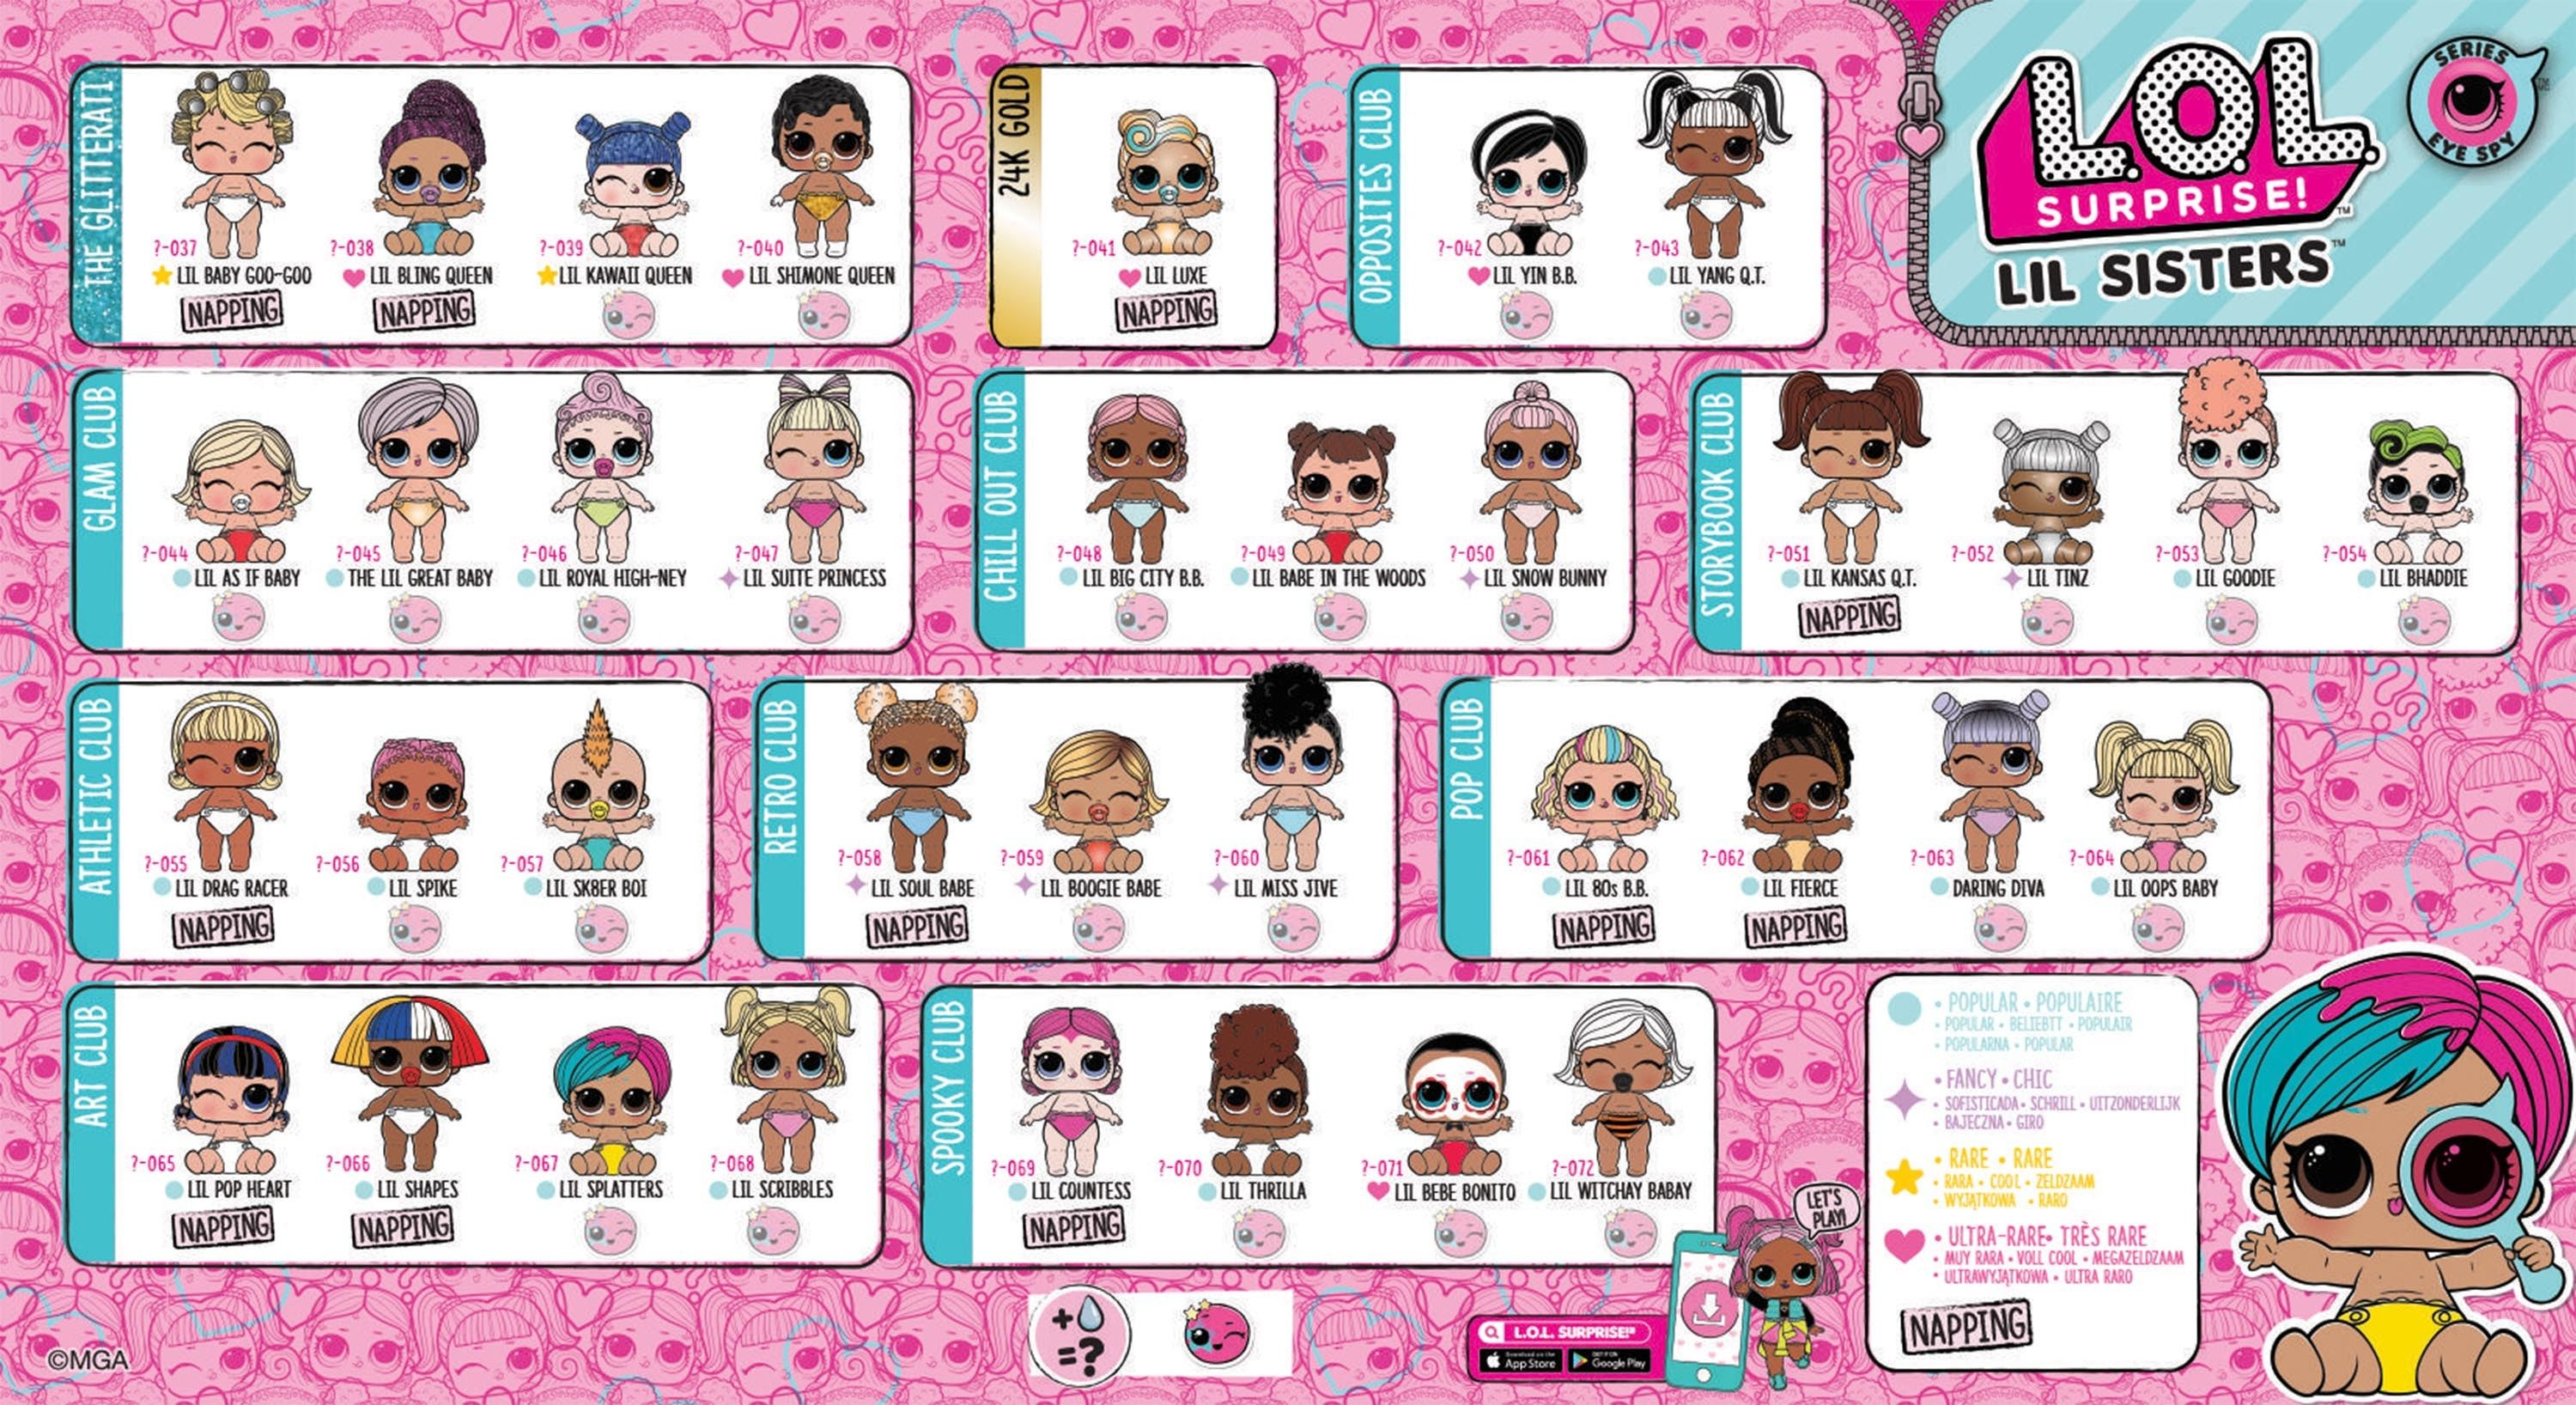 Lol Surprise Doll Series 4 Eye Spy Glam Lil Sisters Wave 2 Collector Guide List Checklist Jpg 3000 1636 Lil Sister Lol Dolls Kids Printable Coloring Pages